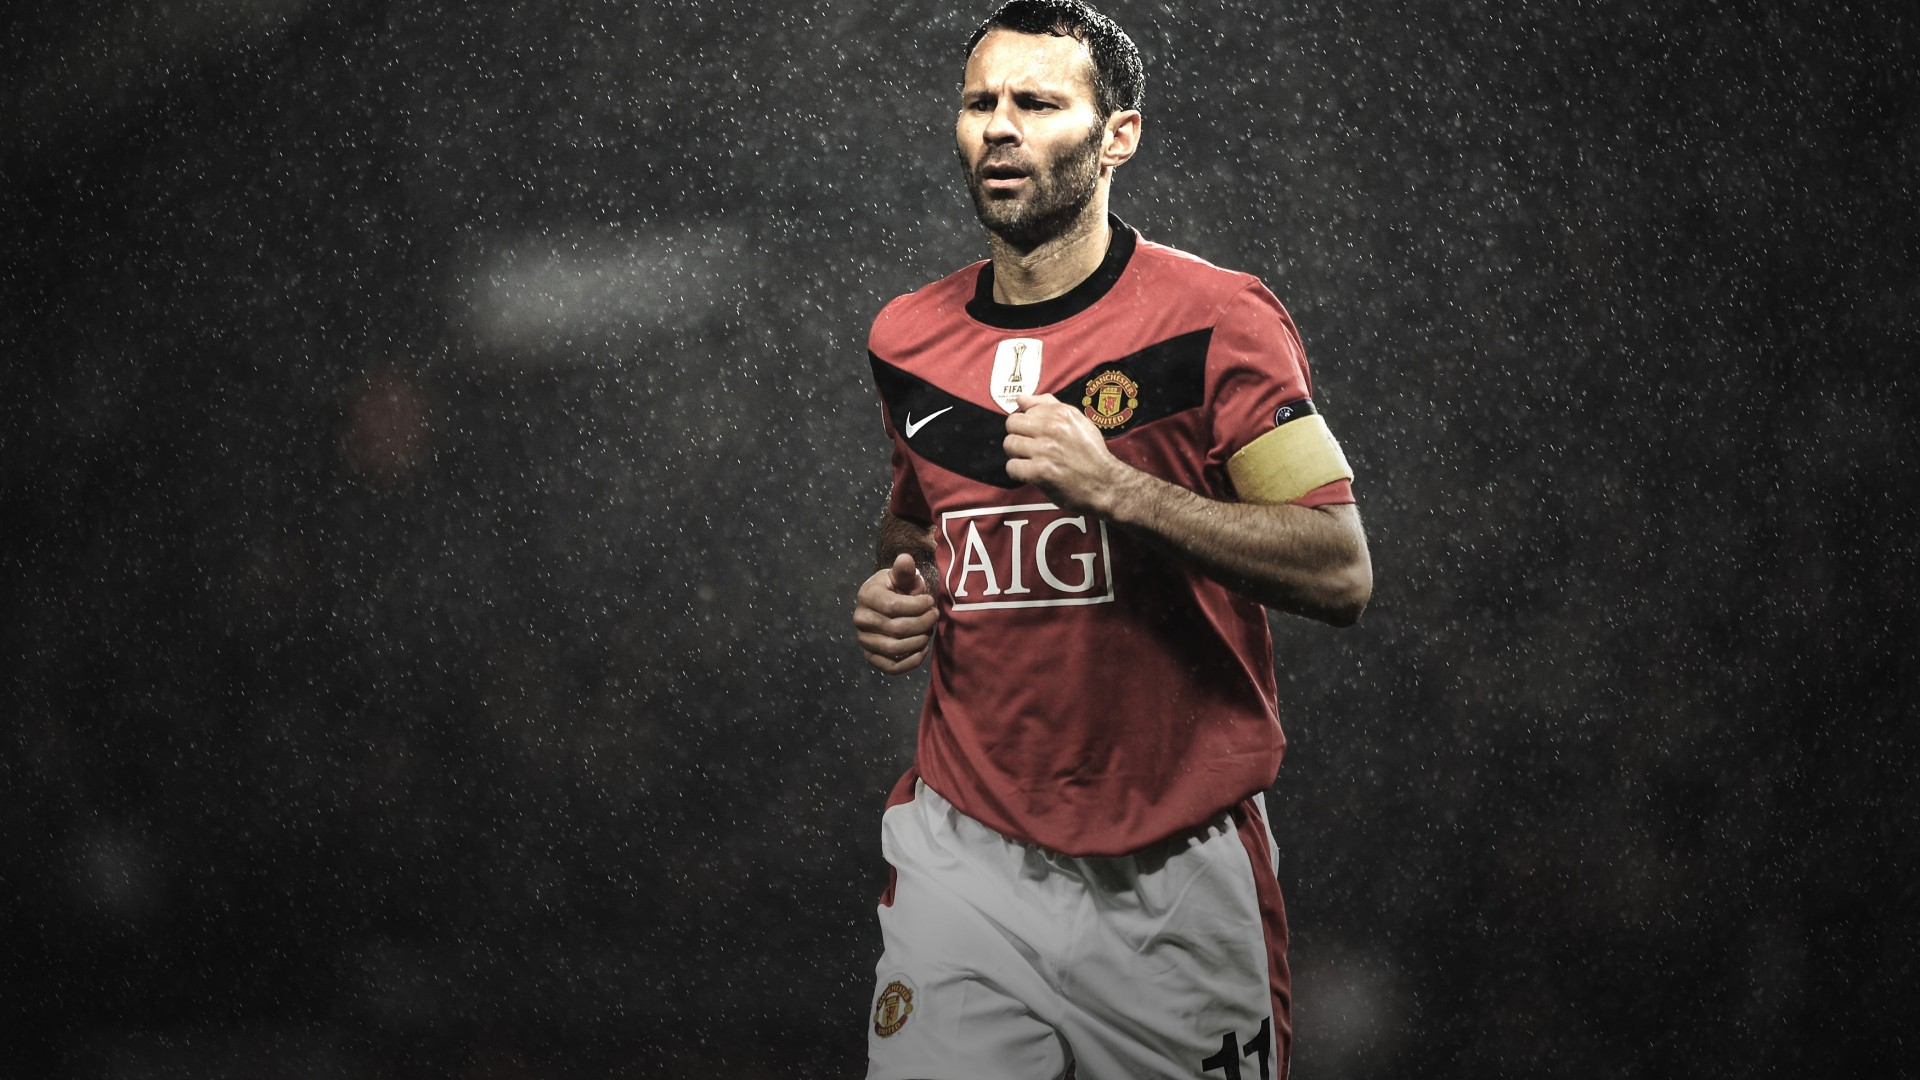 Manchester-United-Ryan-Giggs-Wallpaper-HD